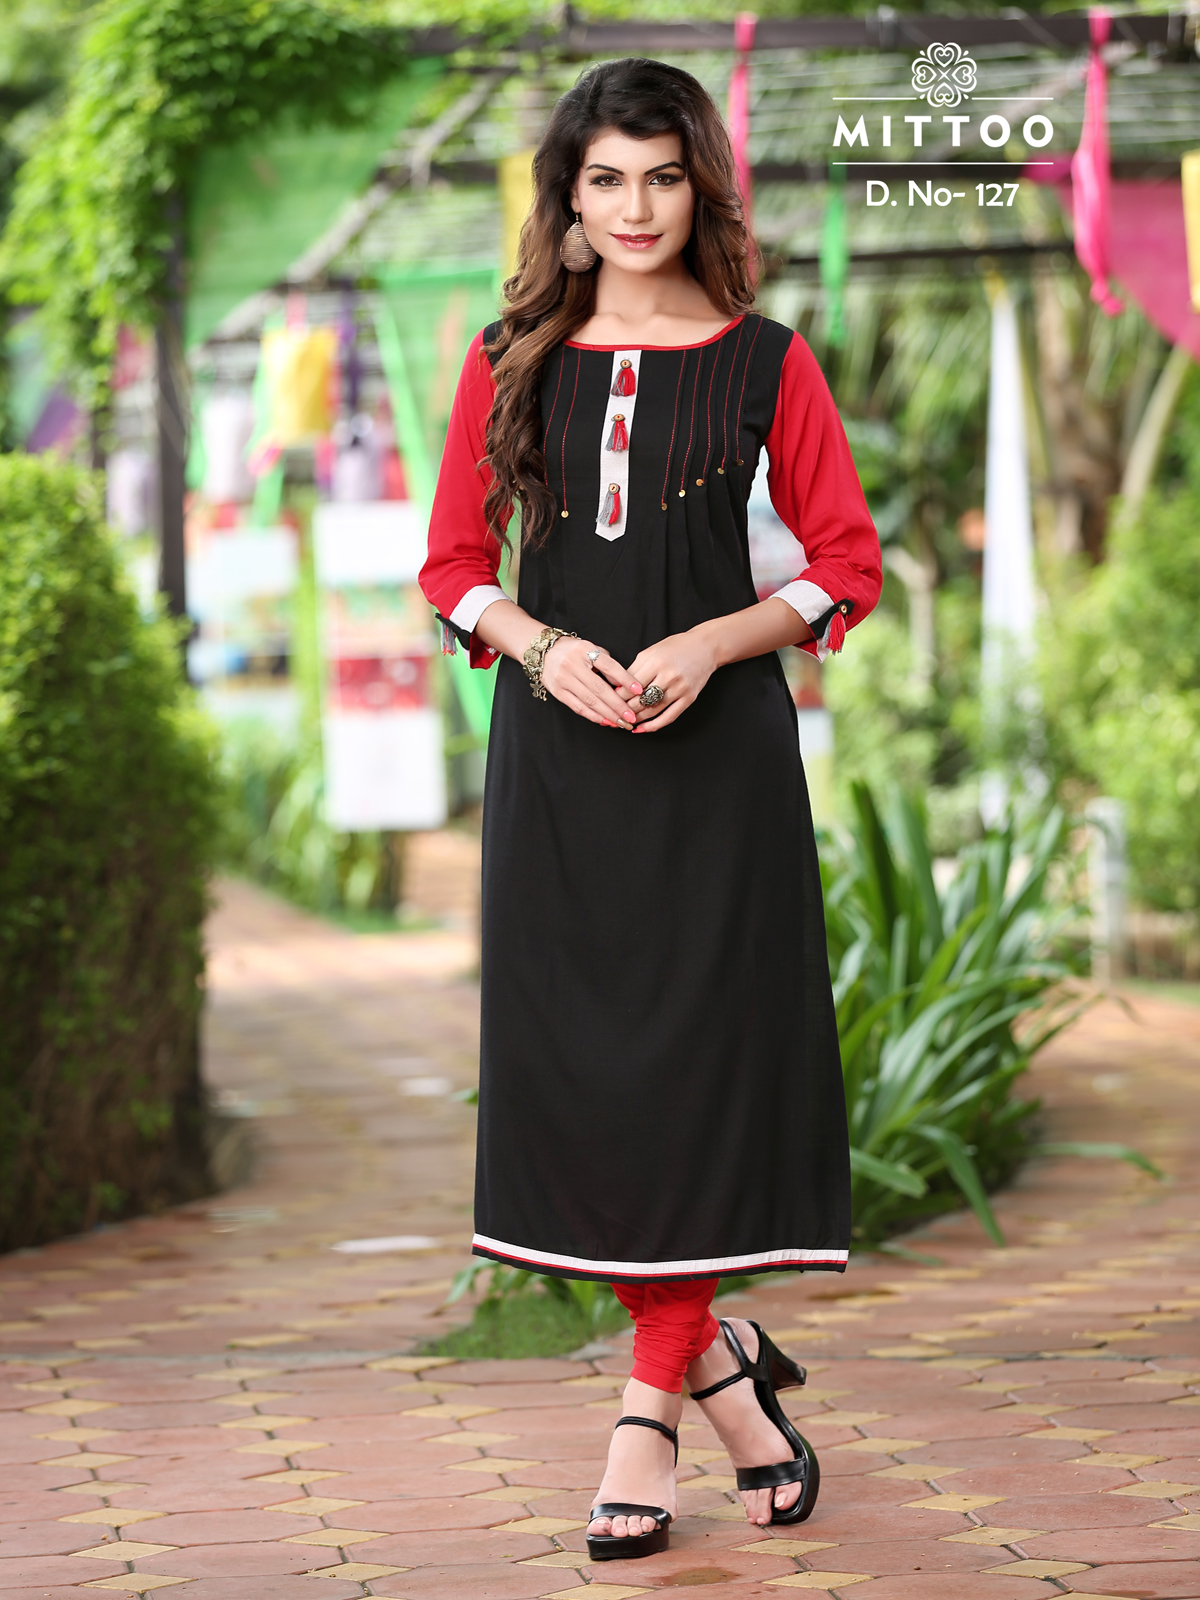 Payal : Mittoo Rayon Embroidery Kurti